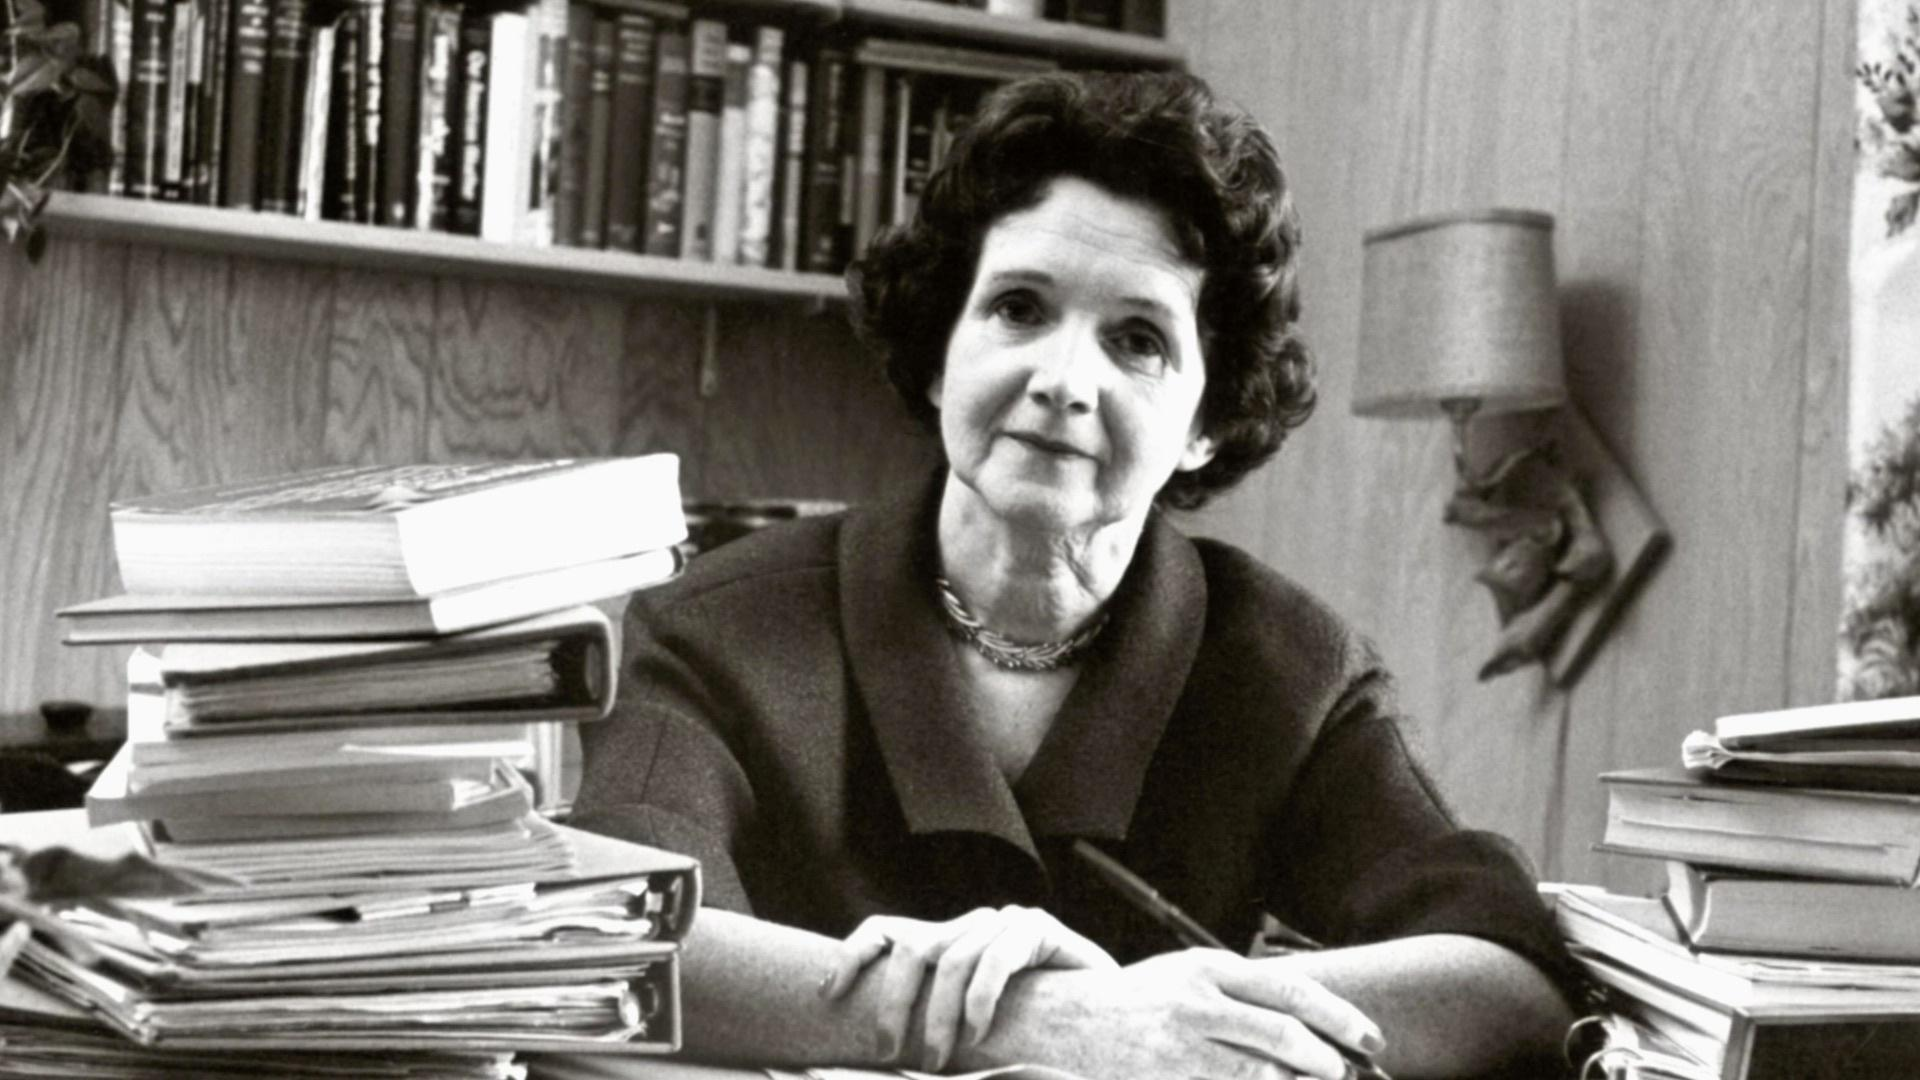 rachel carson Rachel carson (1907–1964) spent most of her professional life as a marine biologist with the us fish and wildlife service by the late 1950s, she had written three lyrical, popular books about the sea, including the best-selling the sea around us, and had become the most respected science writer .